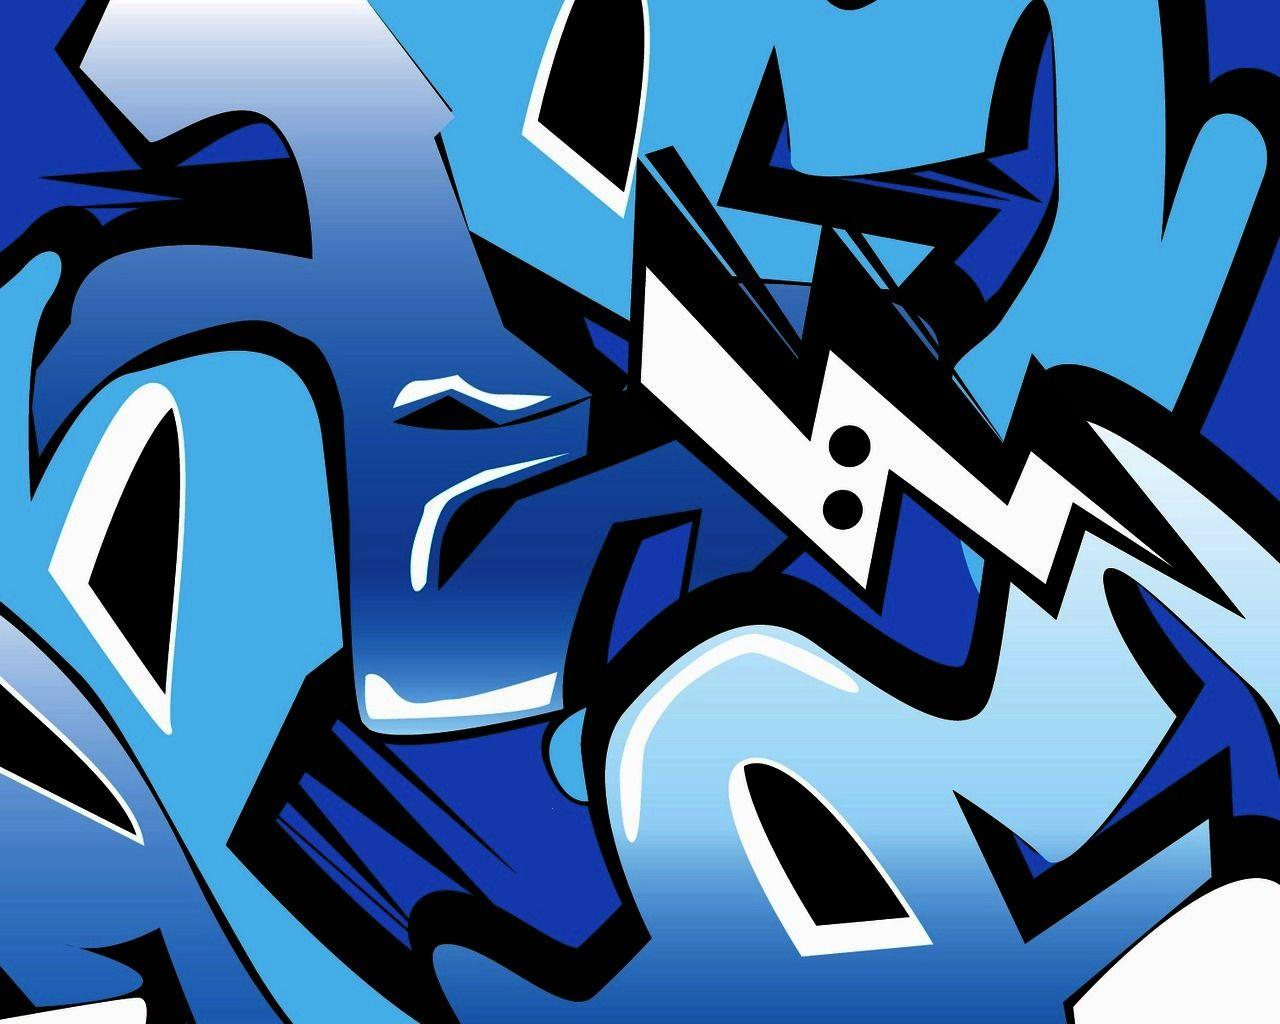 Graffiti Desktop Backgrounds - Wallpaper Cave